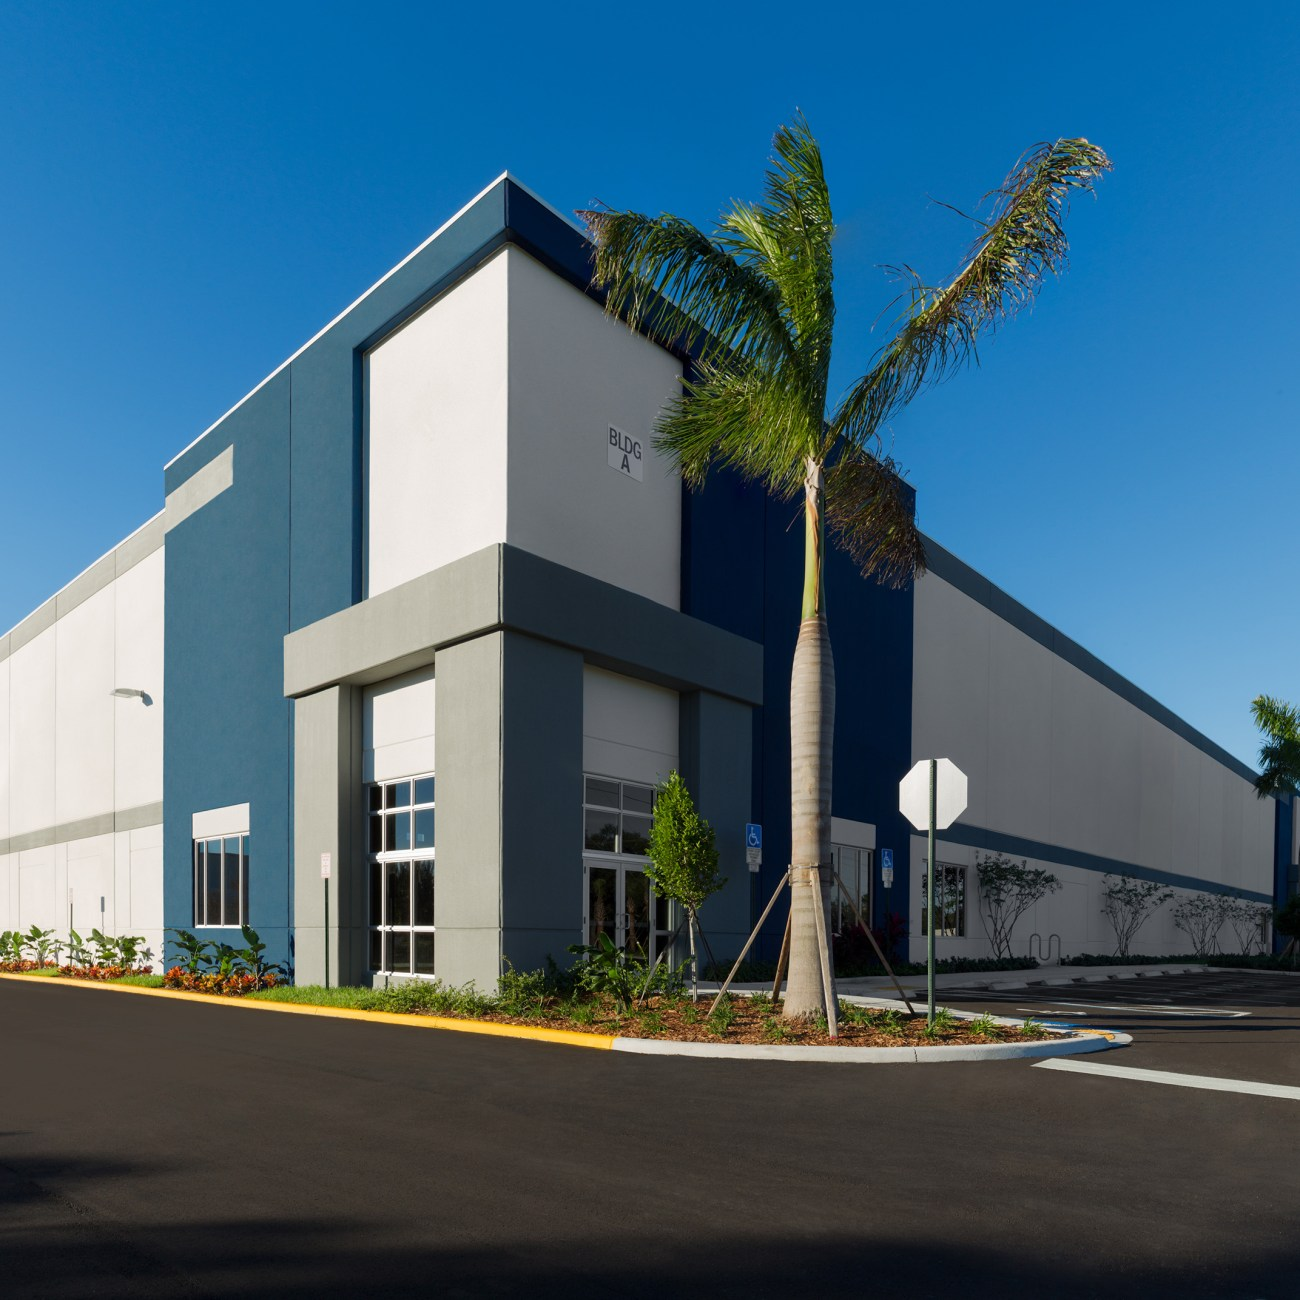 Cushman & Wakefield Announces New Leases at Port 95 Business Center